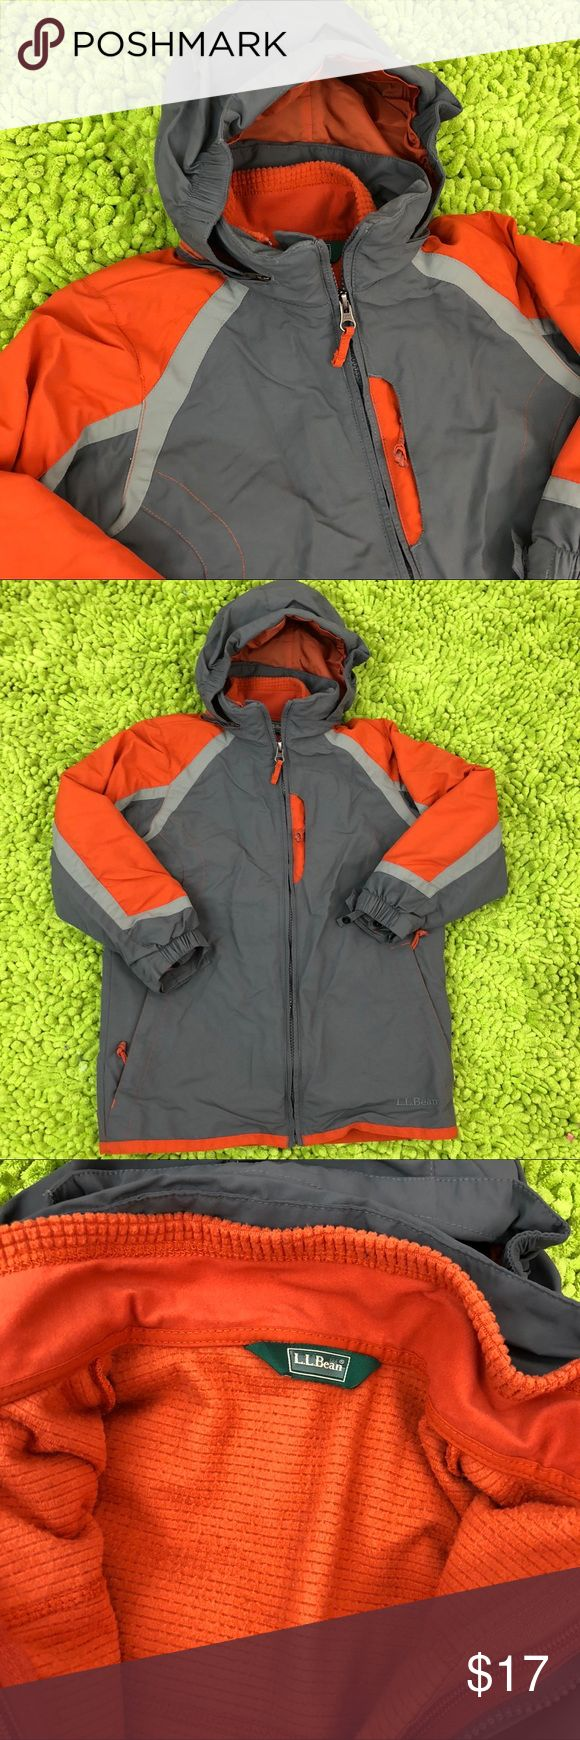 L.L. Bean Boys 3-in-1 Winter Coat Size 6X L.L. Bean Boys 3-in-1 Snow Jacket   Size 6X  Hood stores in zippered neck compartment  Zip out fleece has zip front and pockets  Coat has side zippered pockets   Velcro-closure-and-elastic cuffs  Wear the coat with fleece zipped in, wear the fleece alone, or wear the water-resistant shell for rainy day  Orange and Gray  Great condition!  Machine Washable!  Note -- Child's name is filled in on inner name tag (inside fleece) See last pic   Smoke Free…